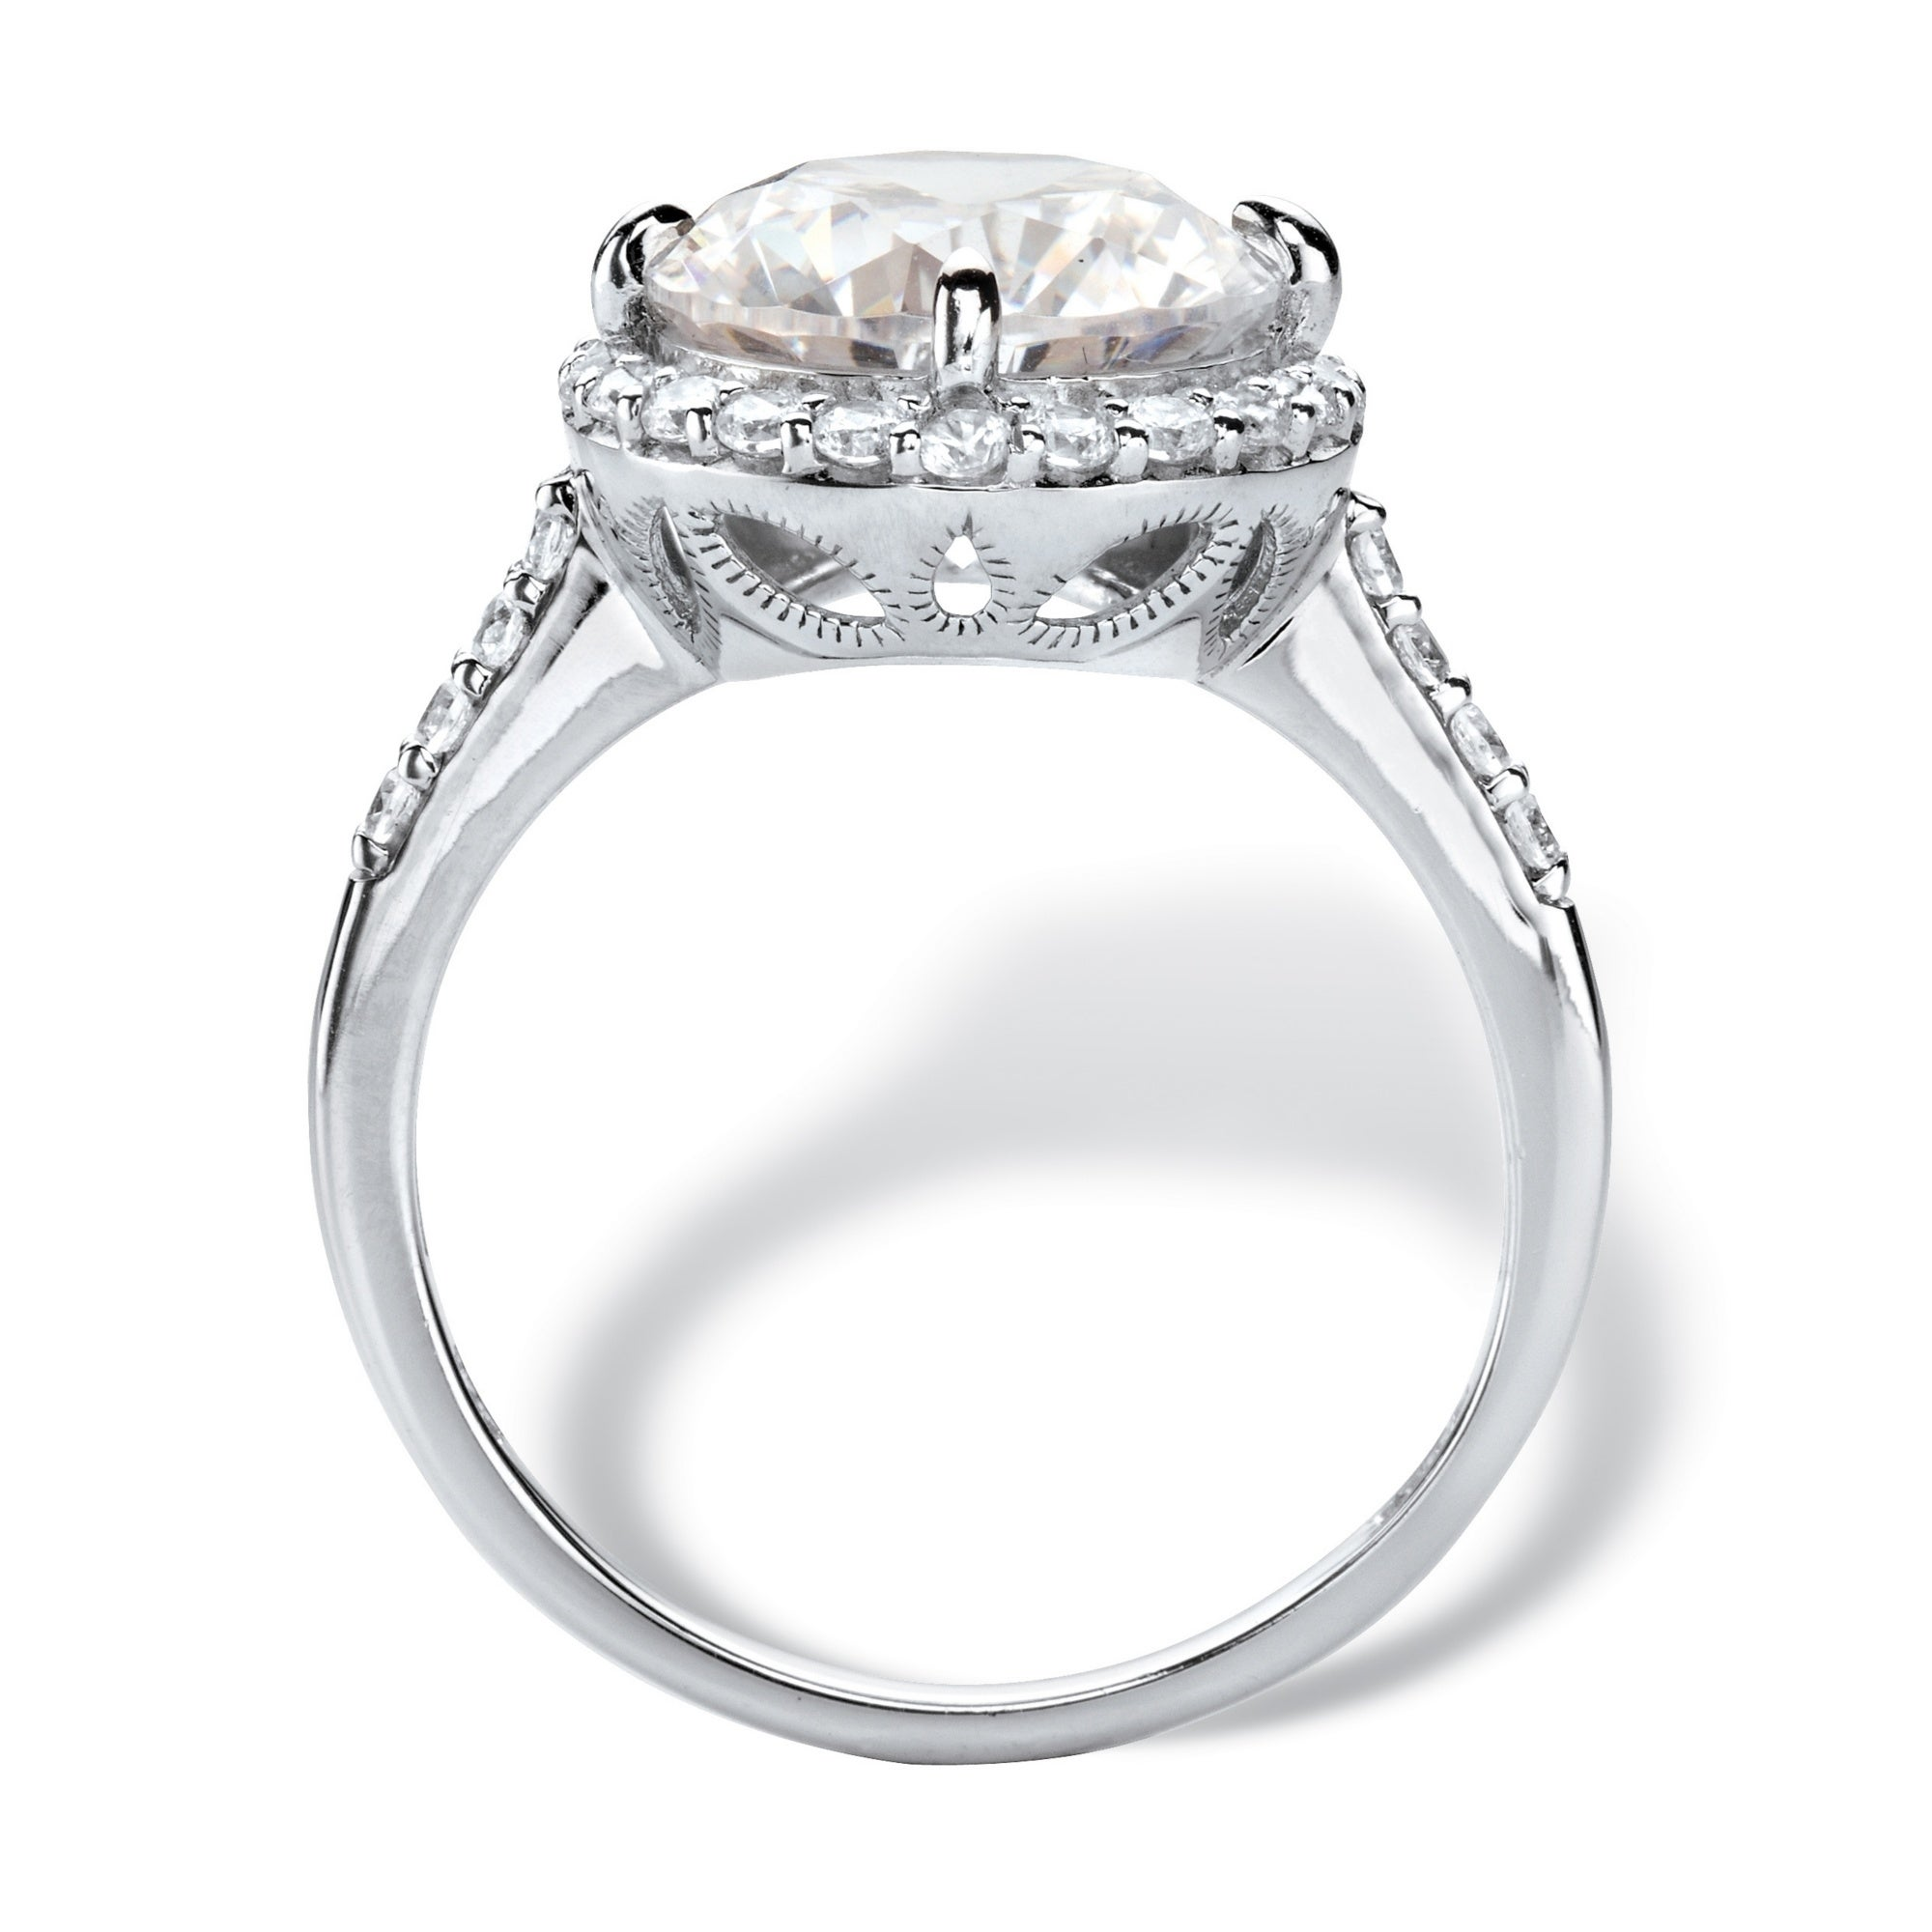 10k White Gold Cubic Zirconia Engagement Ring Overstock 14486708